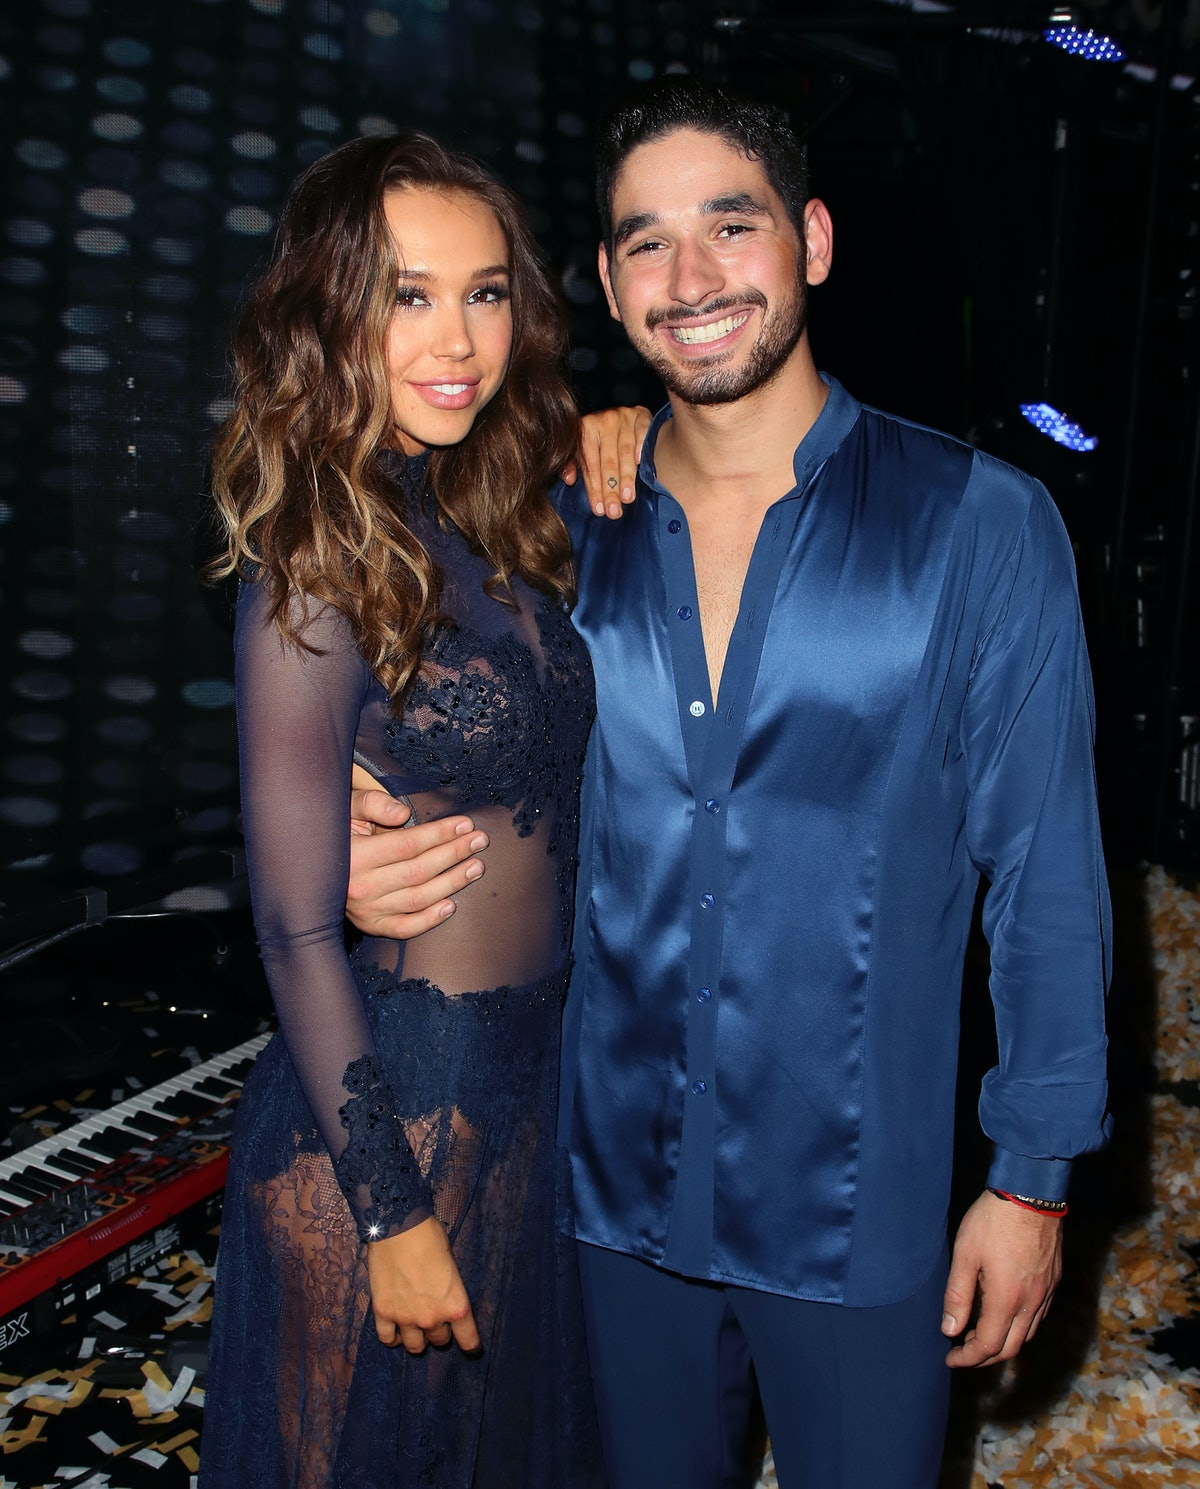 Before dating Noah Centineo, Alexis Ren had a high-profile relationship with Alan Bersten